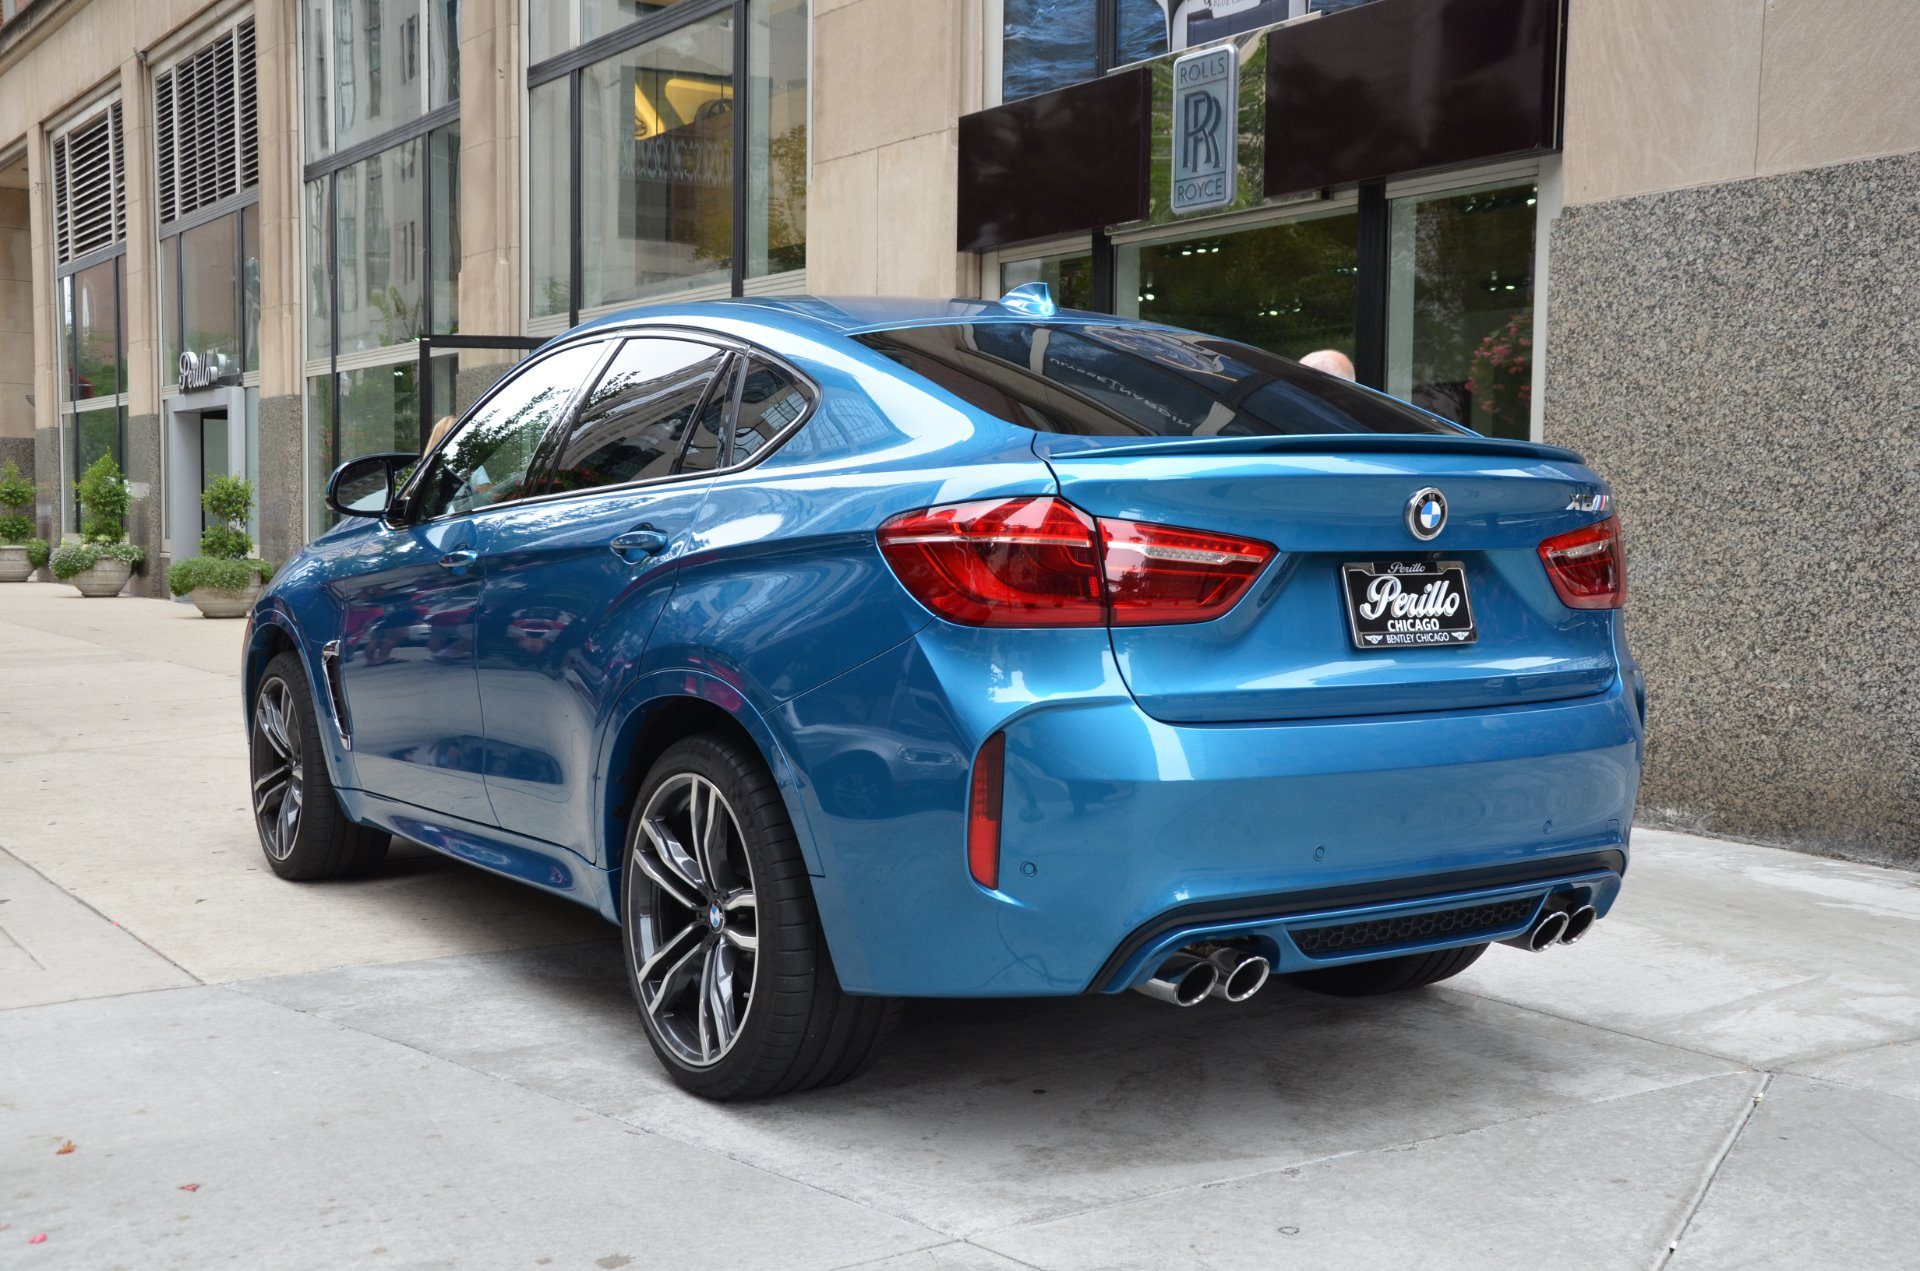 2016 BMW X6 M Stock # B825A for sale near Chicago, IL | IL BMW Dealer